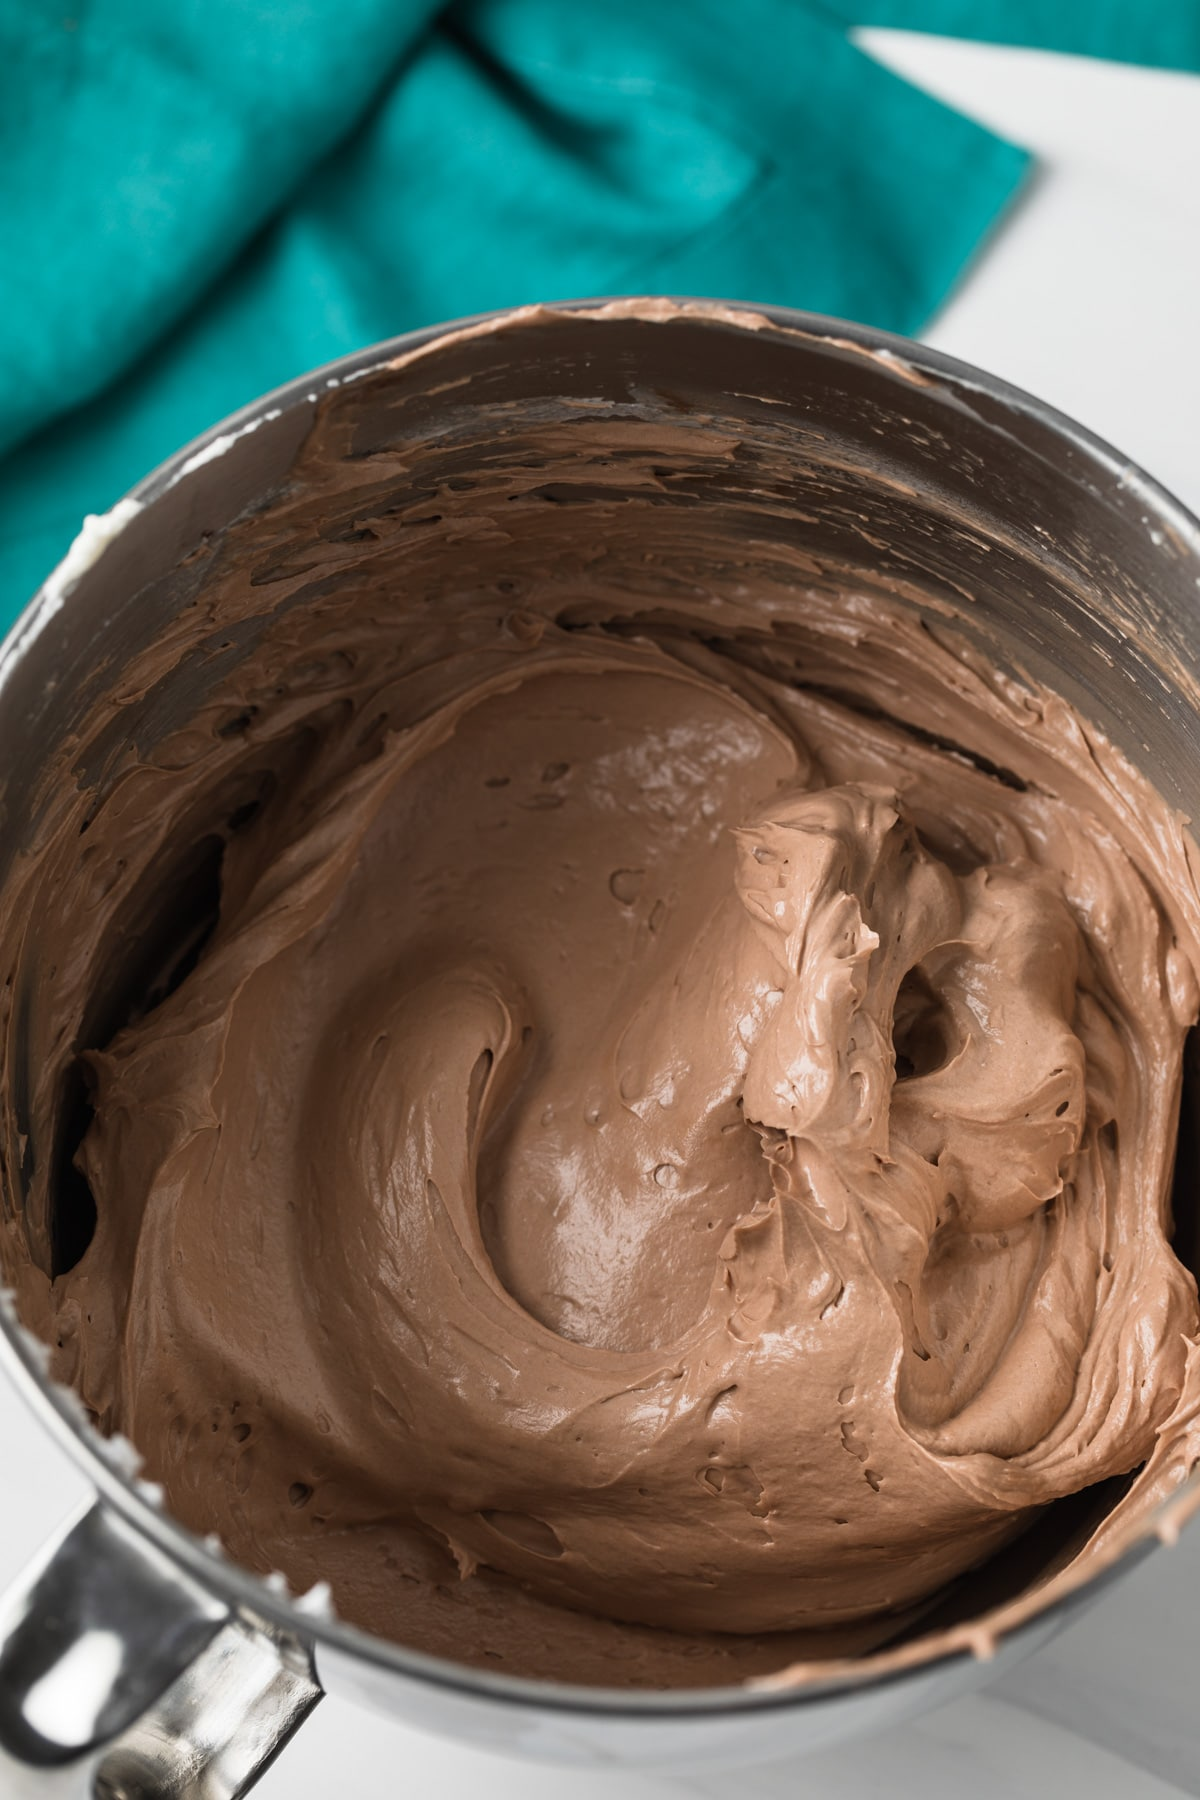 Nutella swiss meringue buttercream in stainless steel mixing bowl